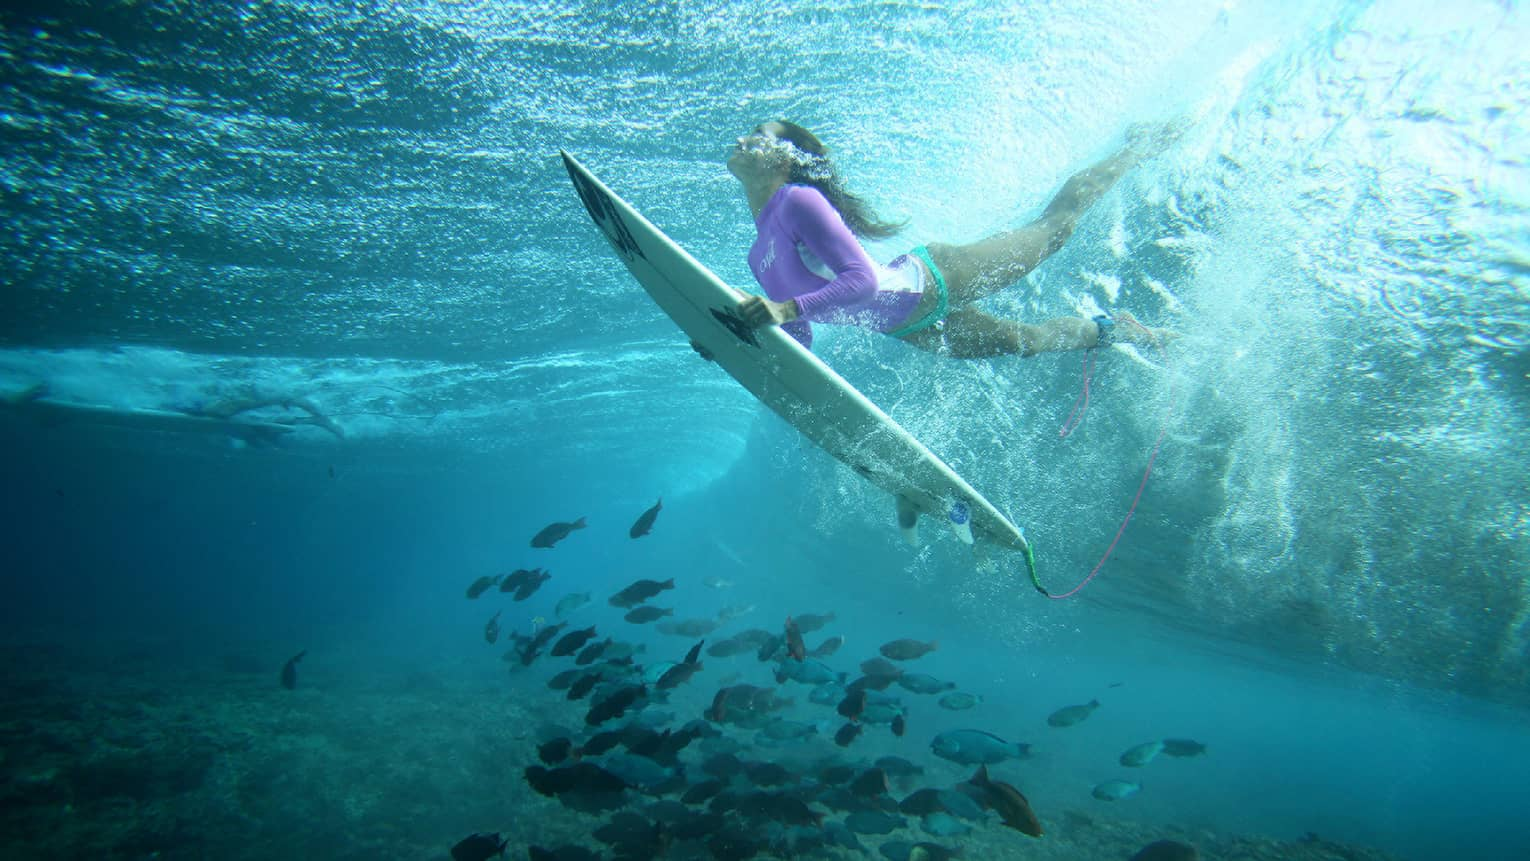 Céline Gehret, ascending from the water above a school of fish as she surfs in the Maldives